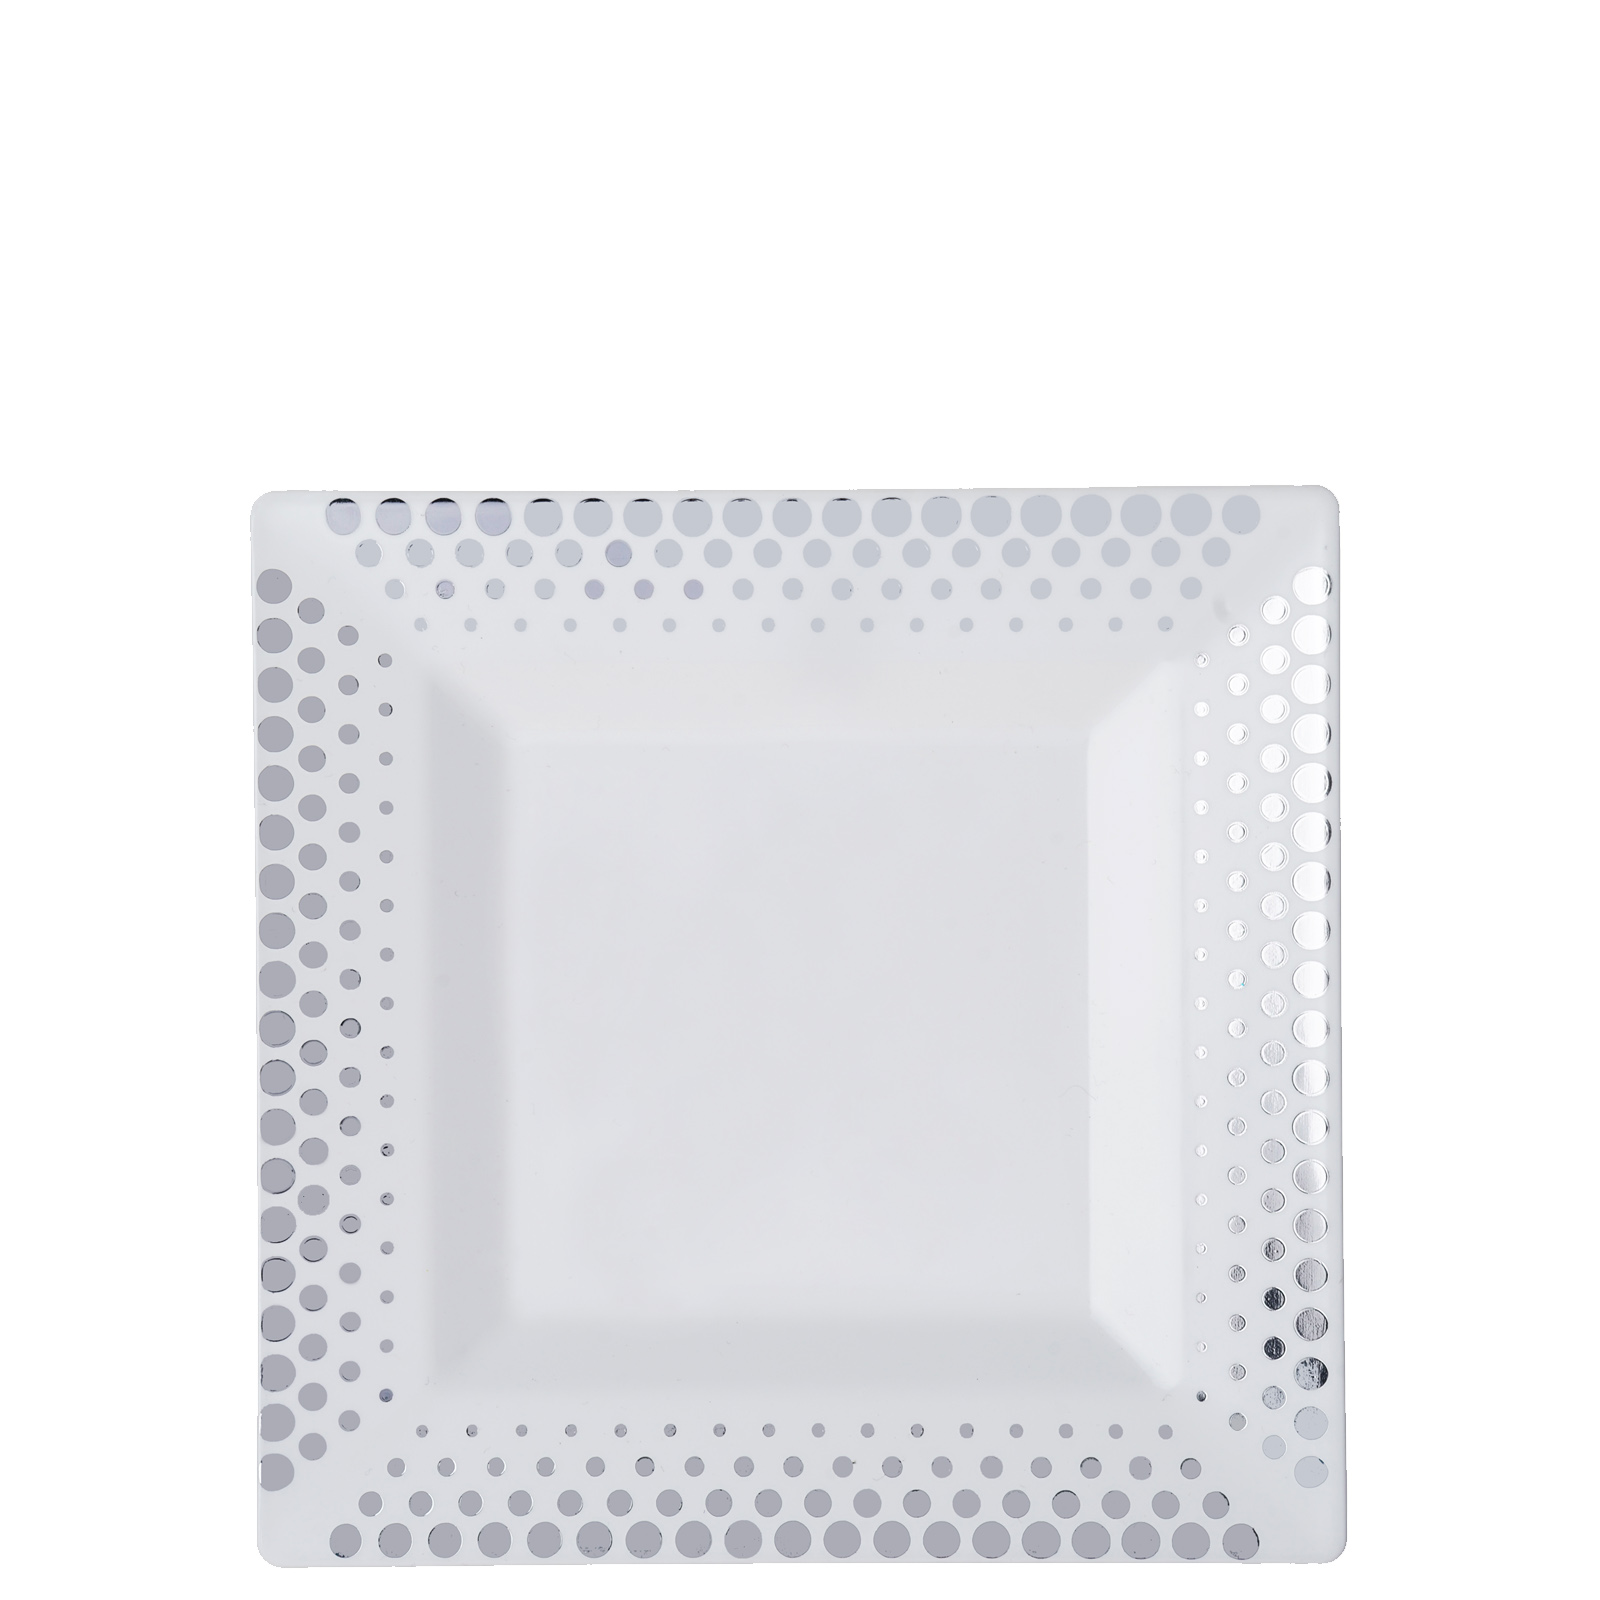 50-Pcs-Square-Disposable-Plastic-Plate-Hot-Dots-  sc 1 st  eBay & 50 Pcs - Square Disposable Plastic Plate - Hot Dots Collection | eBay